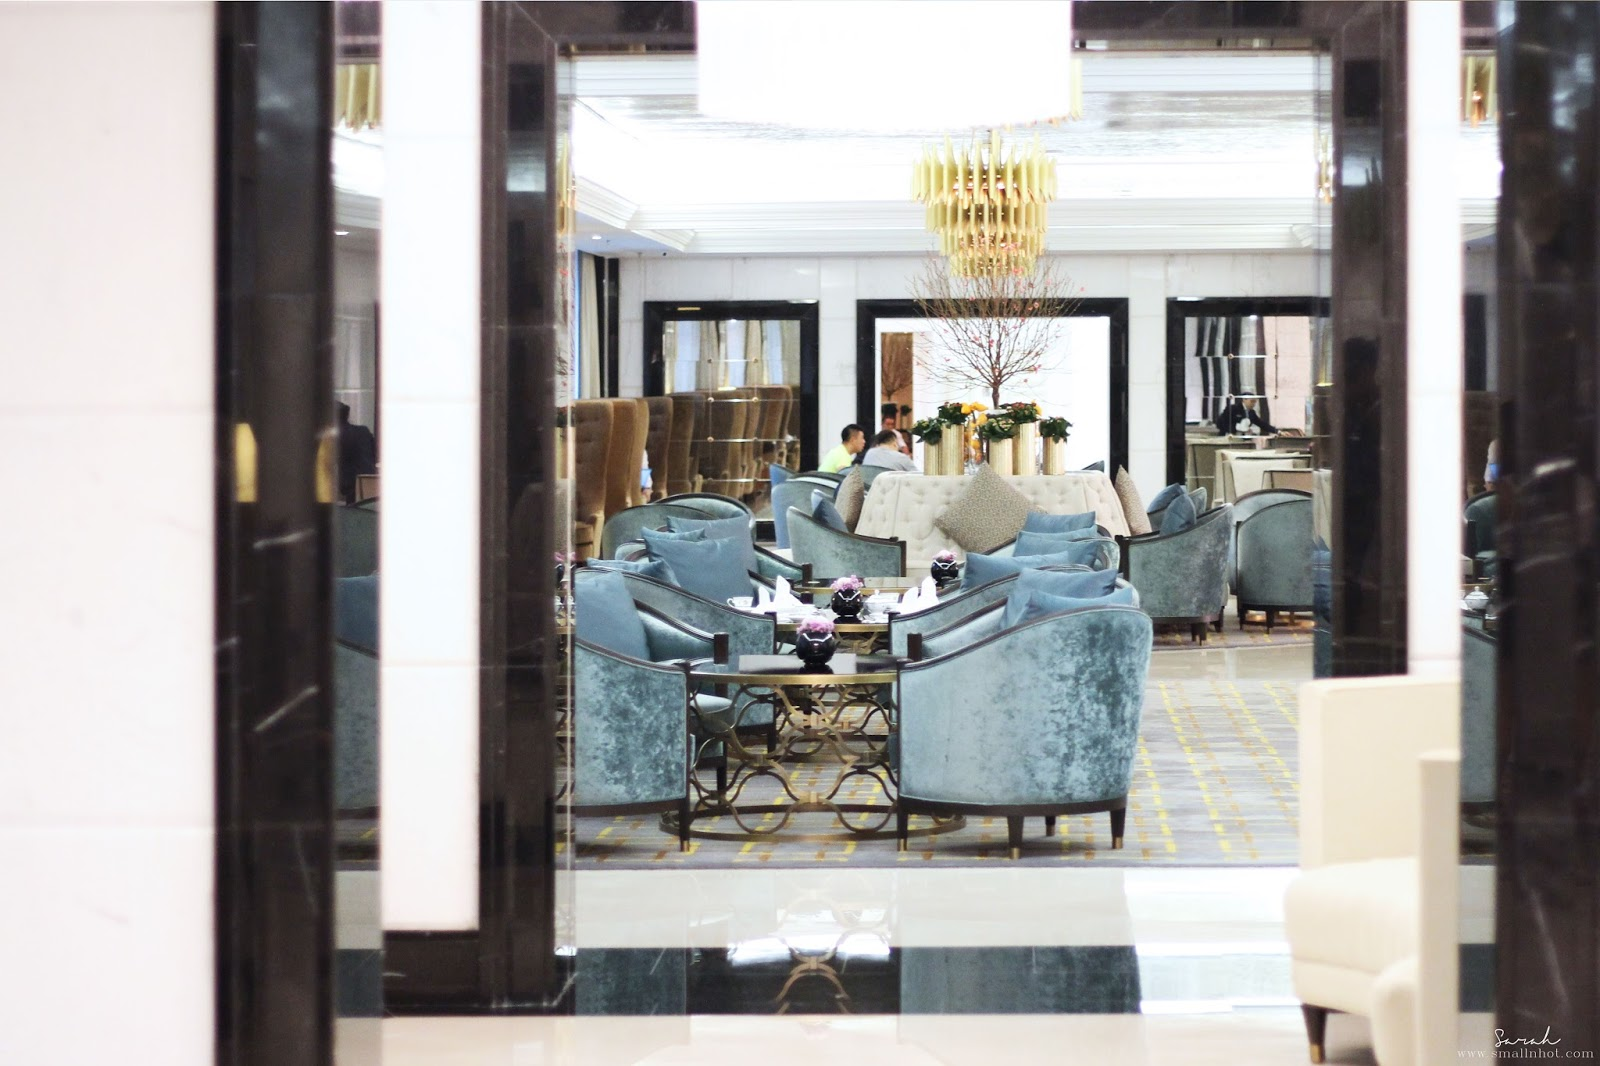 Afternoon Tea Lobby Lounge The Ritz Carlton Kl Small